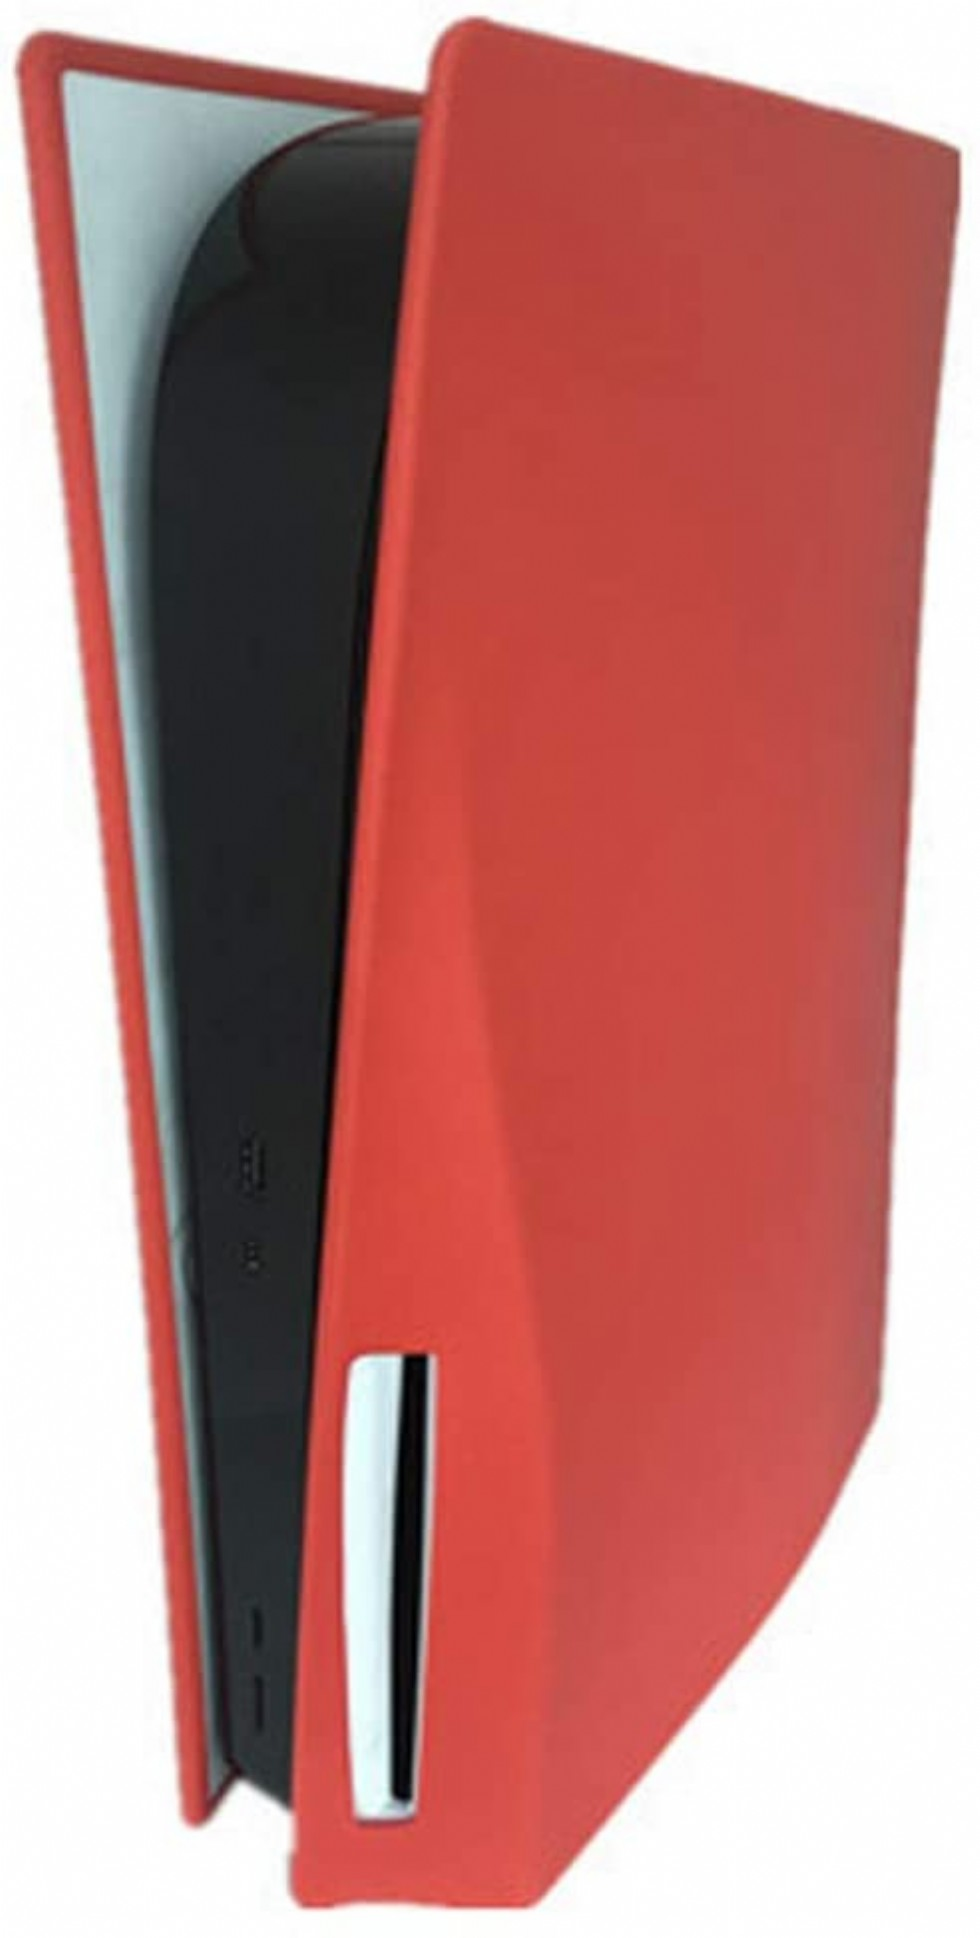 Ps5 Silicone Skin Cover, Dustproof Anti-scratch Anti-fall Protector Case